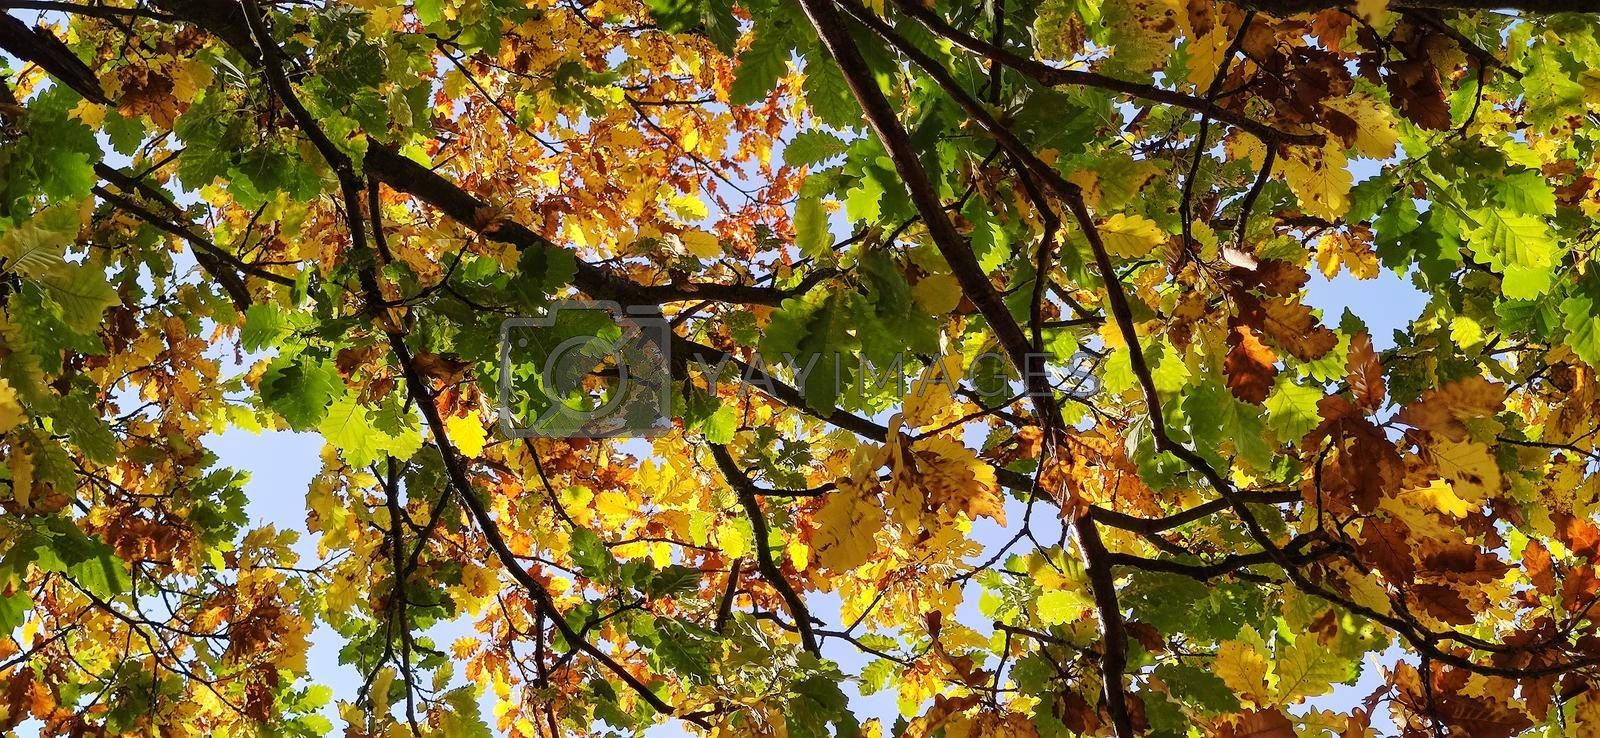 Colored leafs in autumn